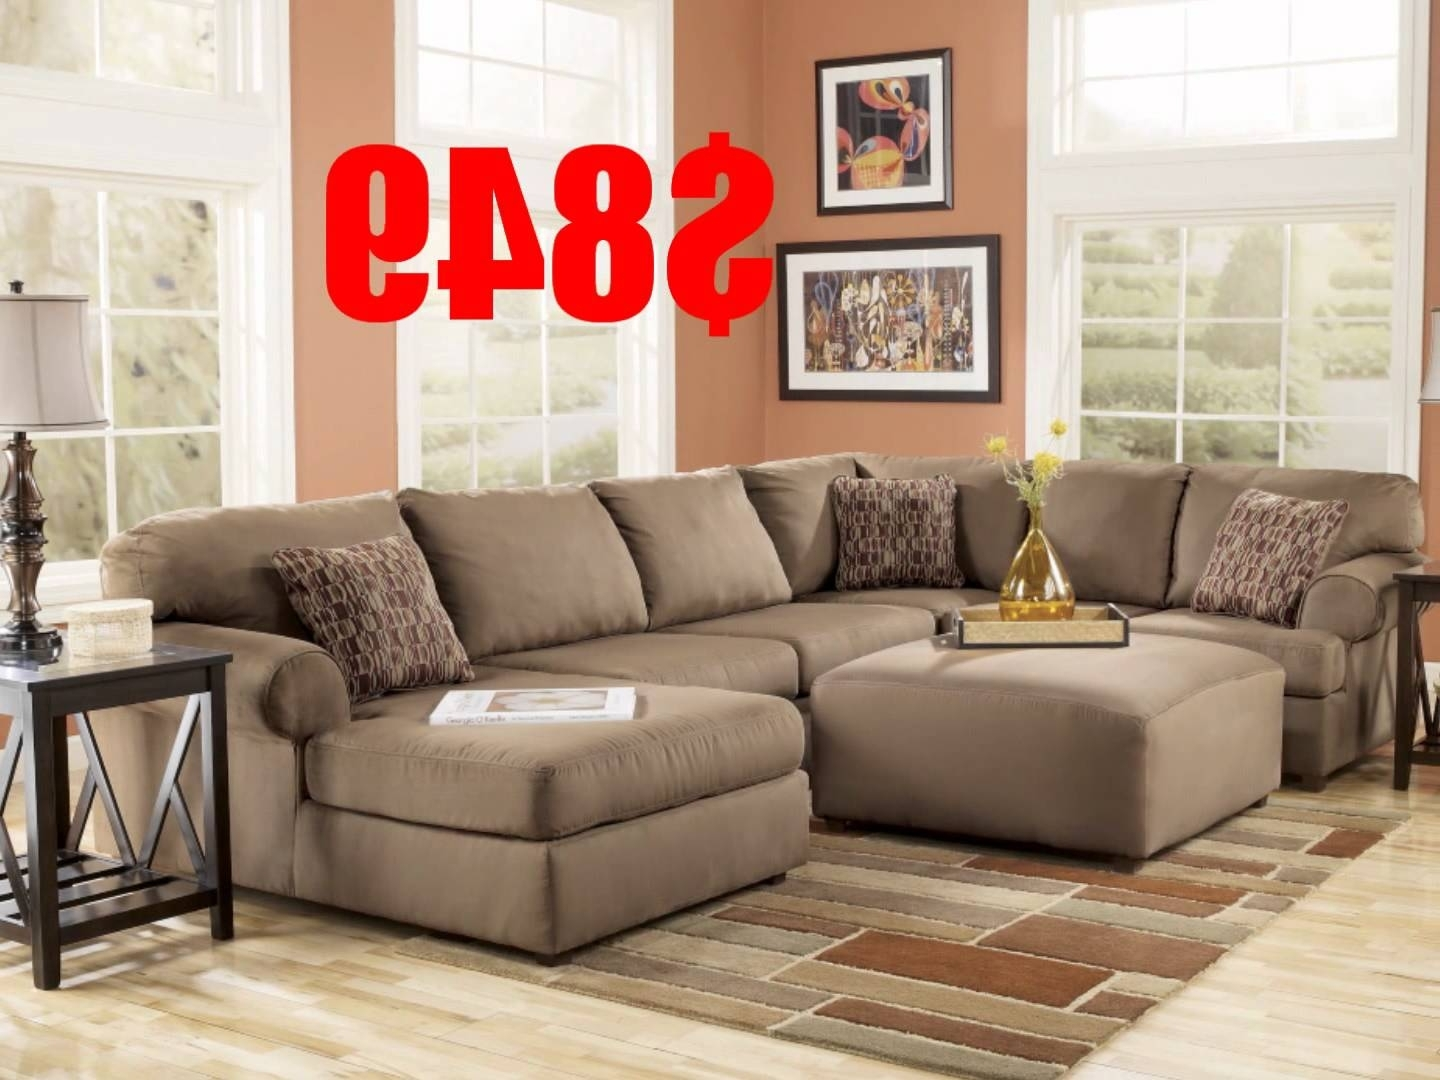 Ashley Furniture Brody Mocha Sectional – Youtube Within Newest Sectional Sofas At Ashley Furniture (View 2 of 20)